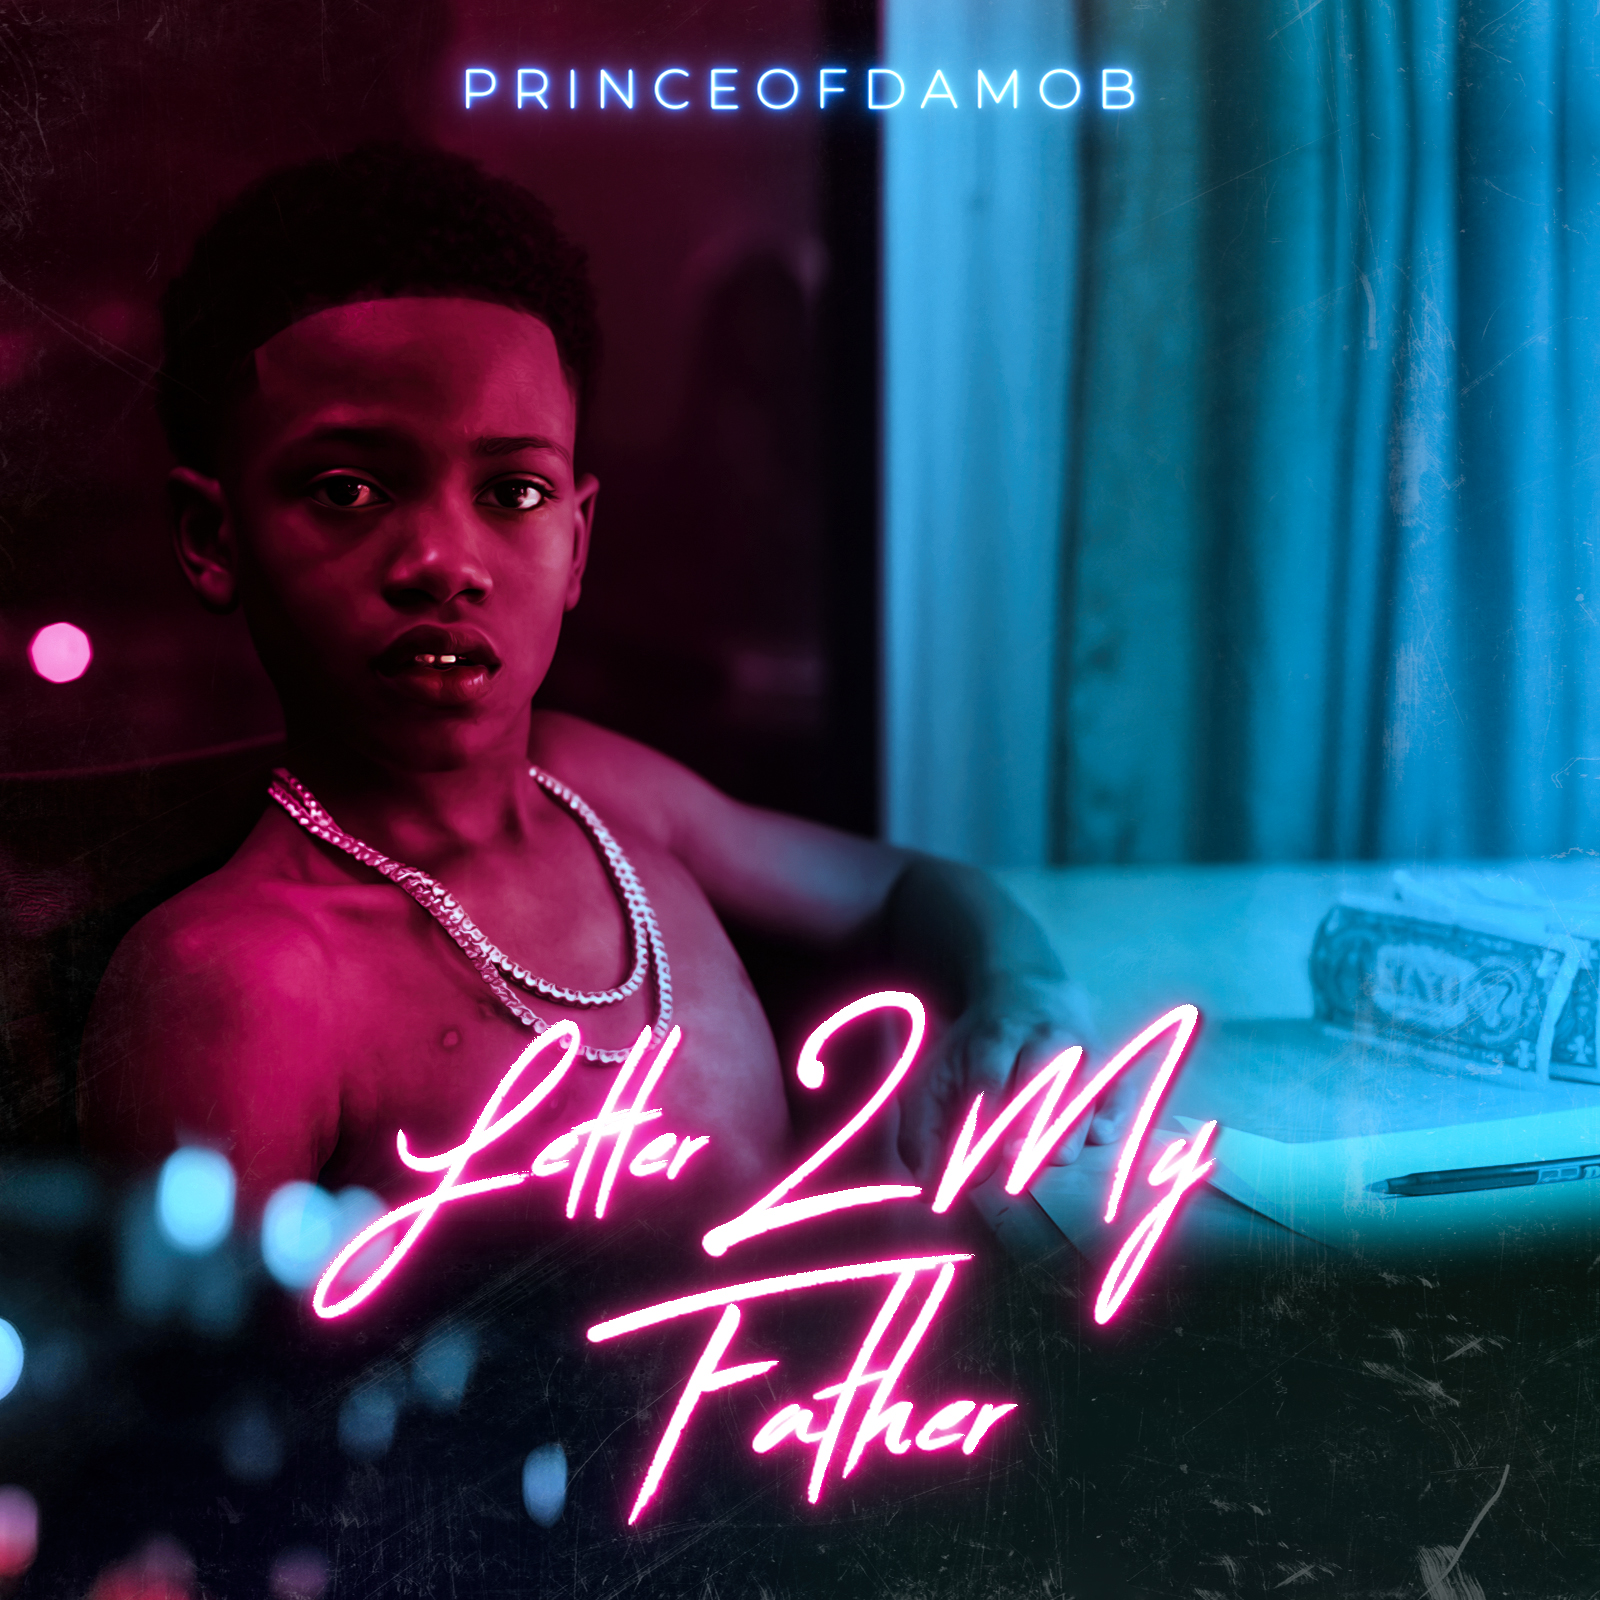 """Raw and Moving Hip Hop Tribute: PrinceofDaMob Amazes with New Single """"LETTER 2 MY FATHER"""""""